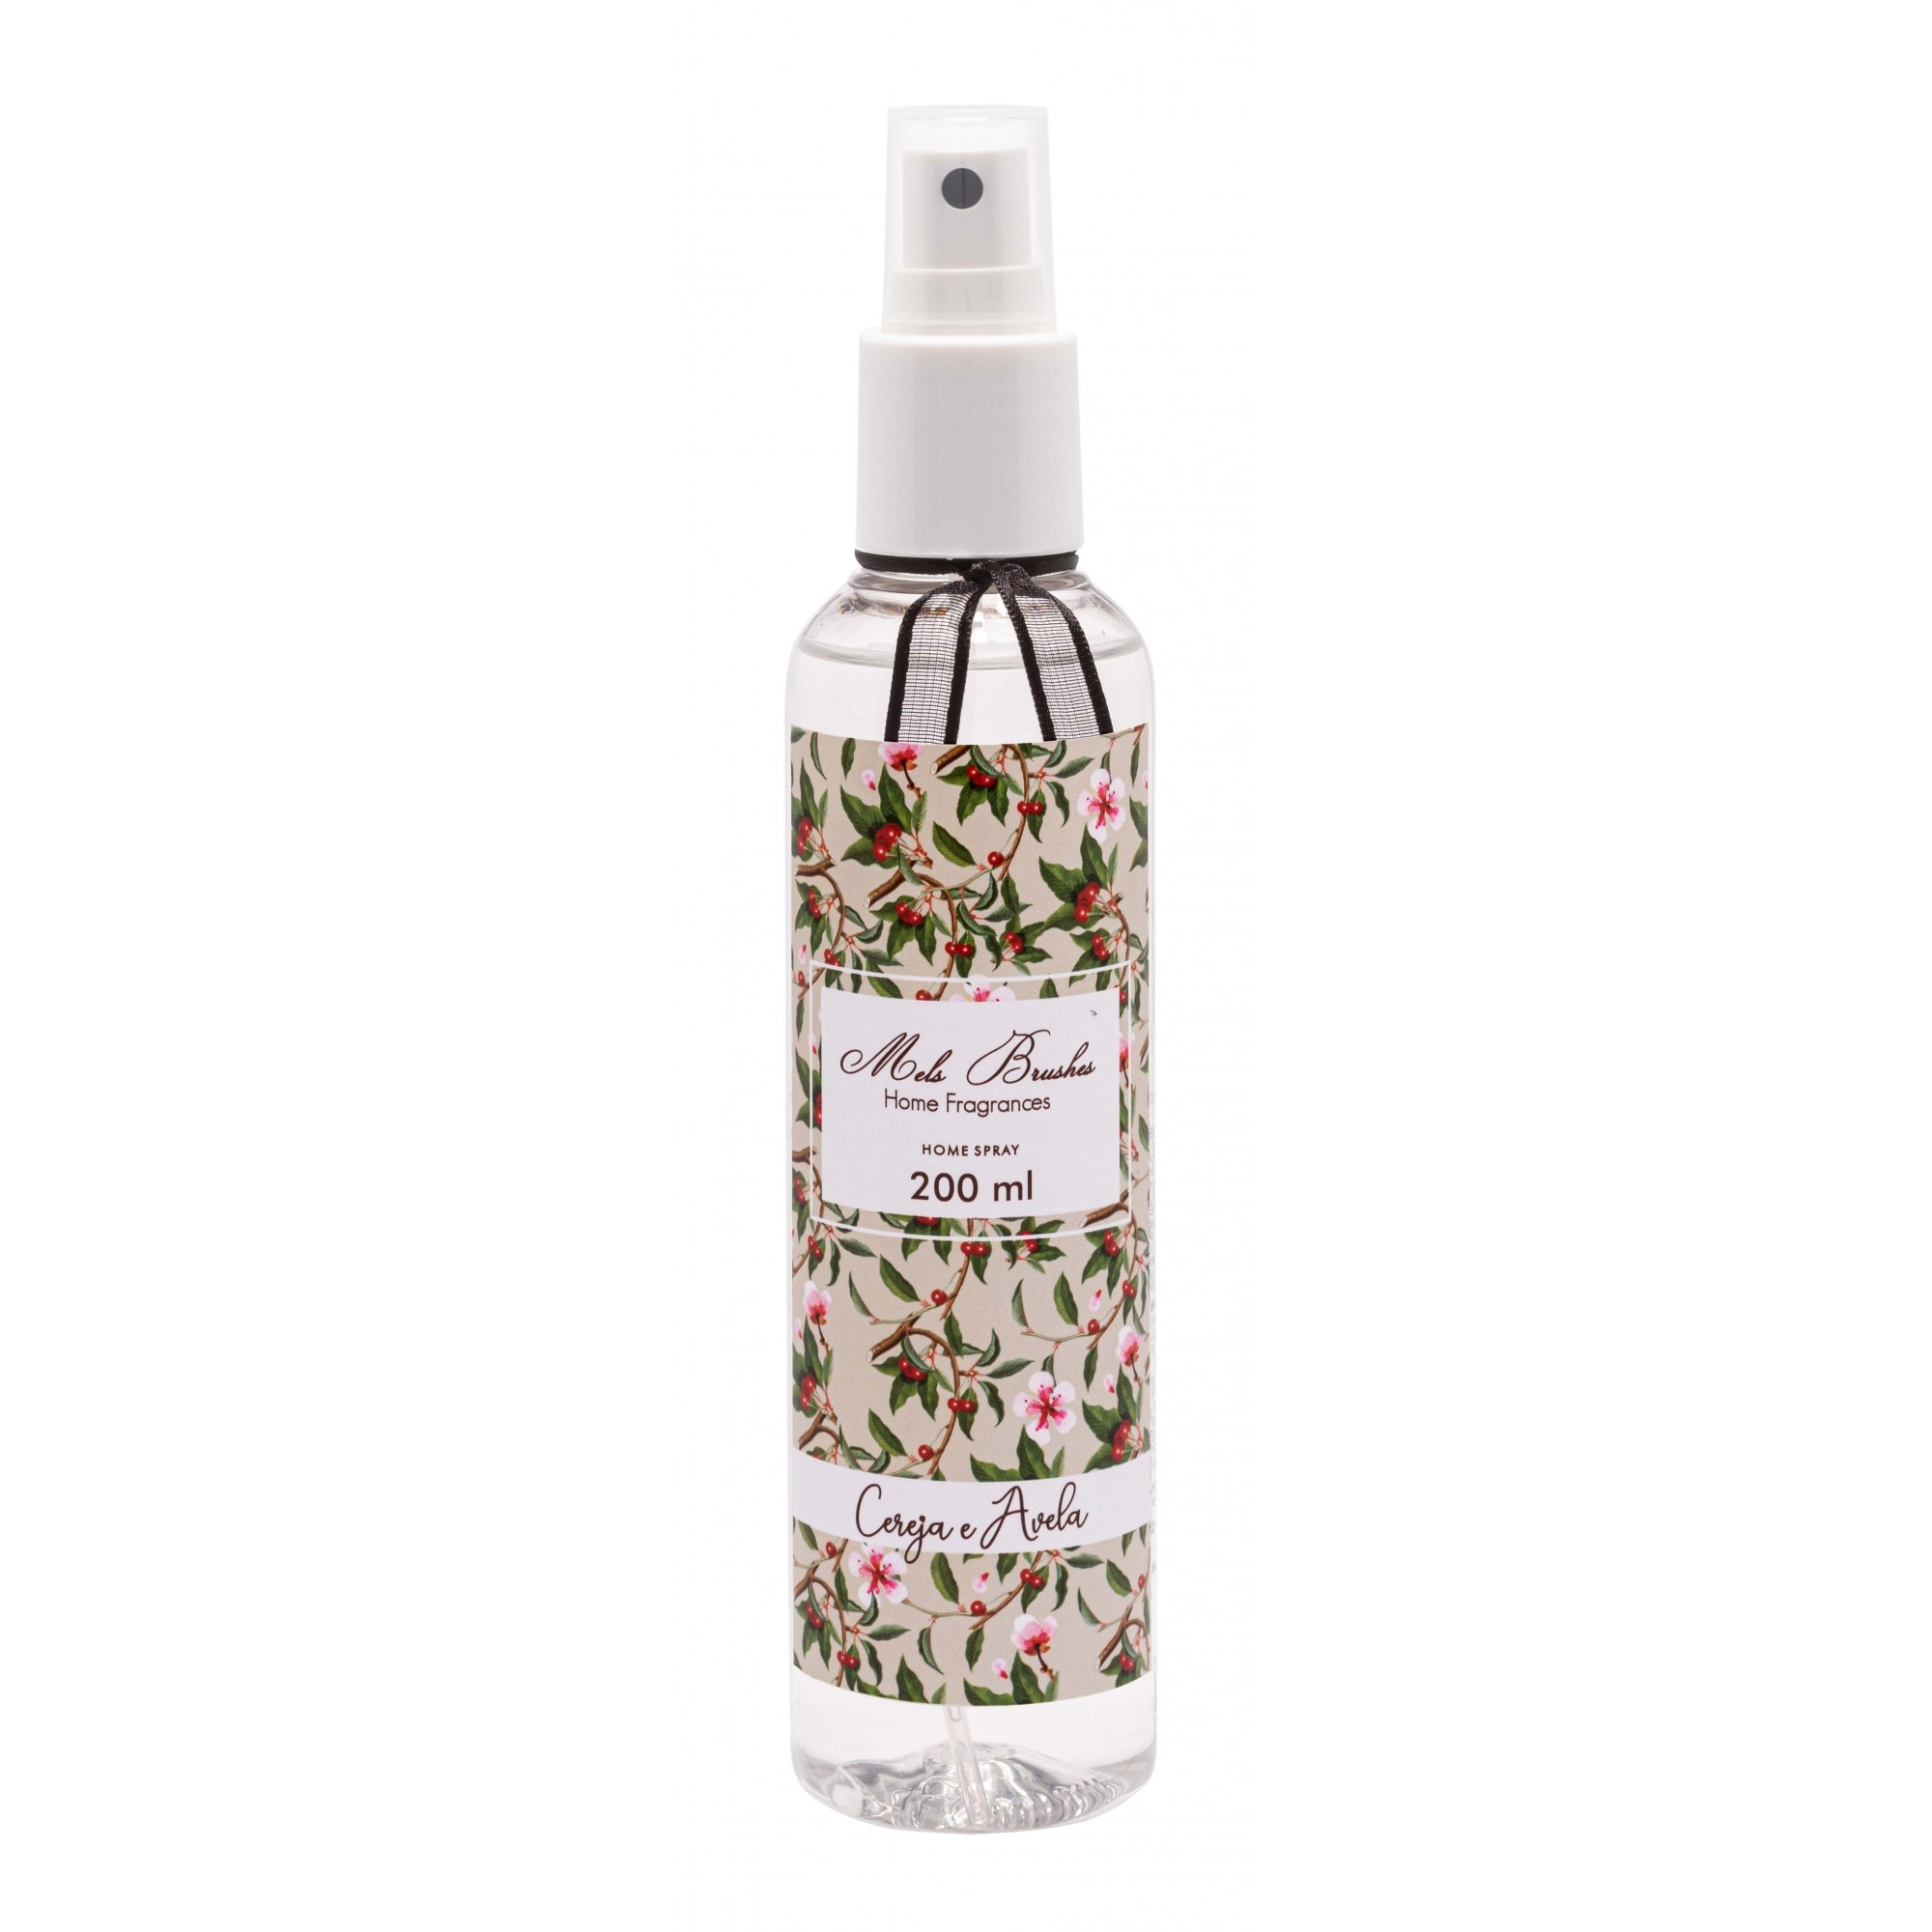 AROMATIZANTE DE AMBIENTE CEREJA & AVELÃ 200 ml DAY BY DAY